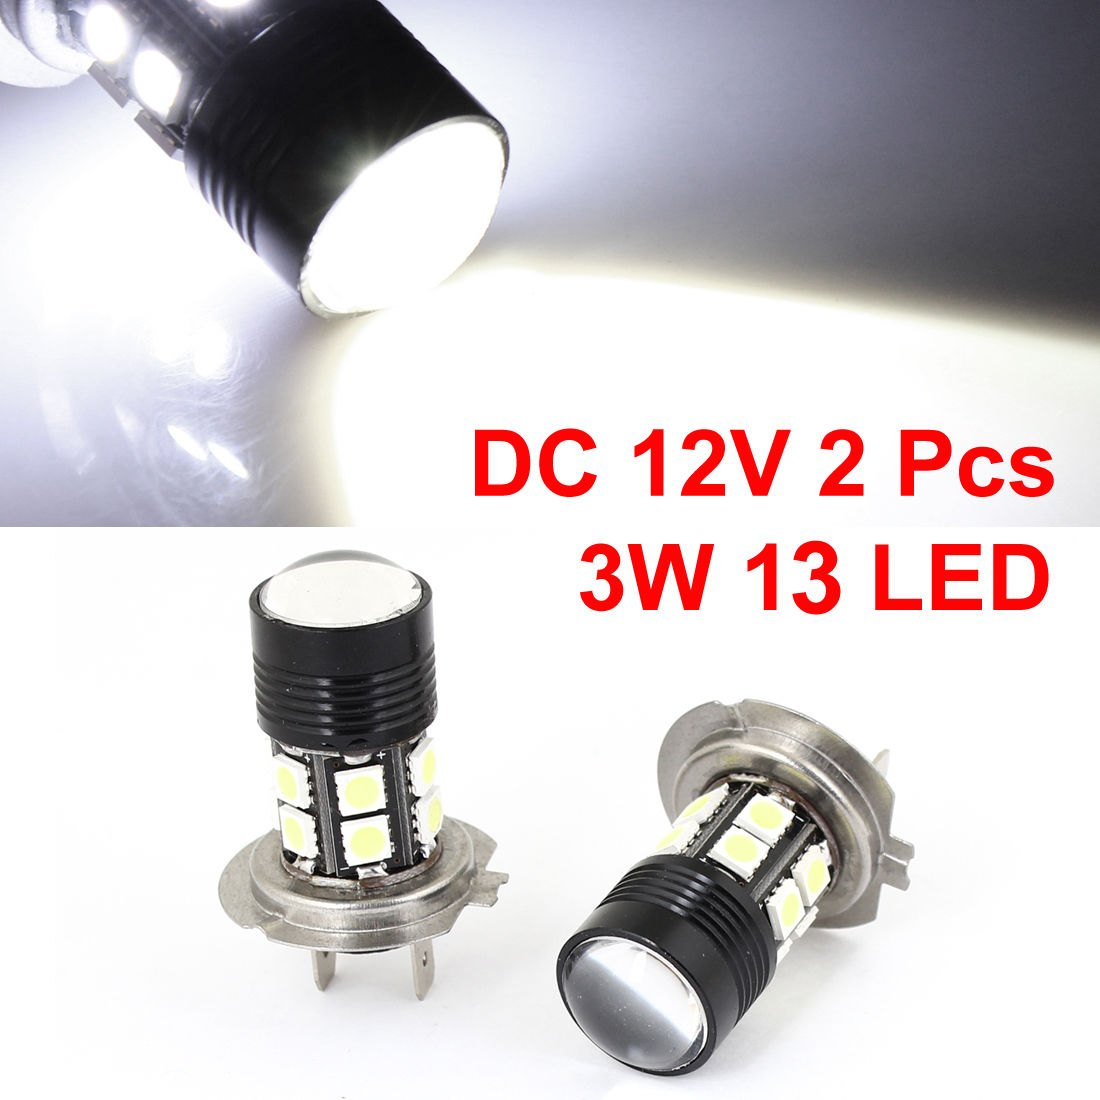 2 x H7 13 5050 SMD LED White Headlight Bulb Fog Light